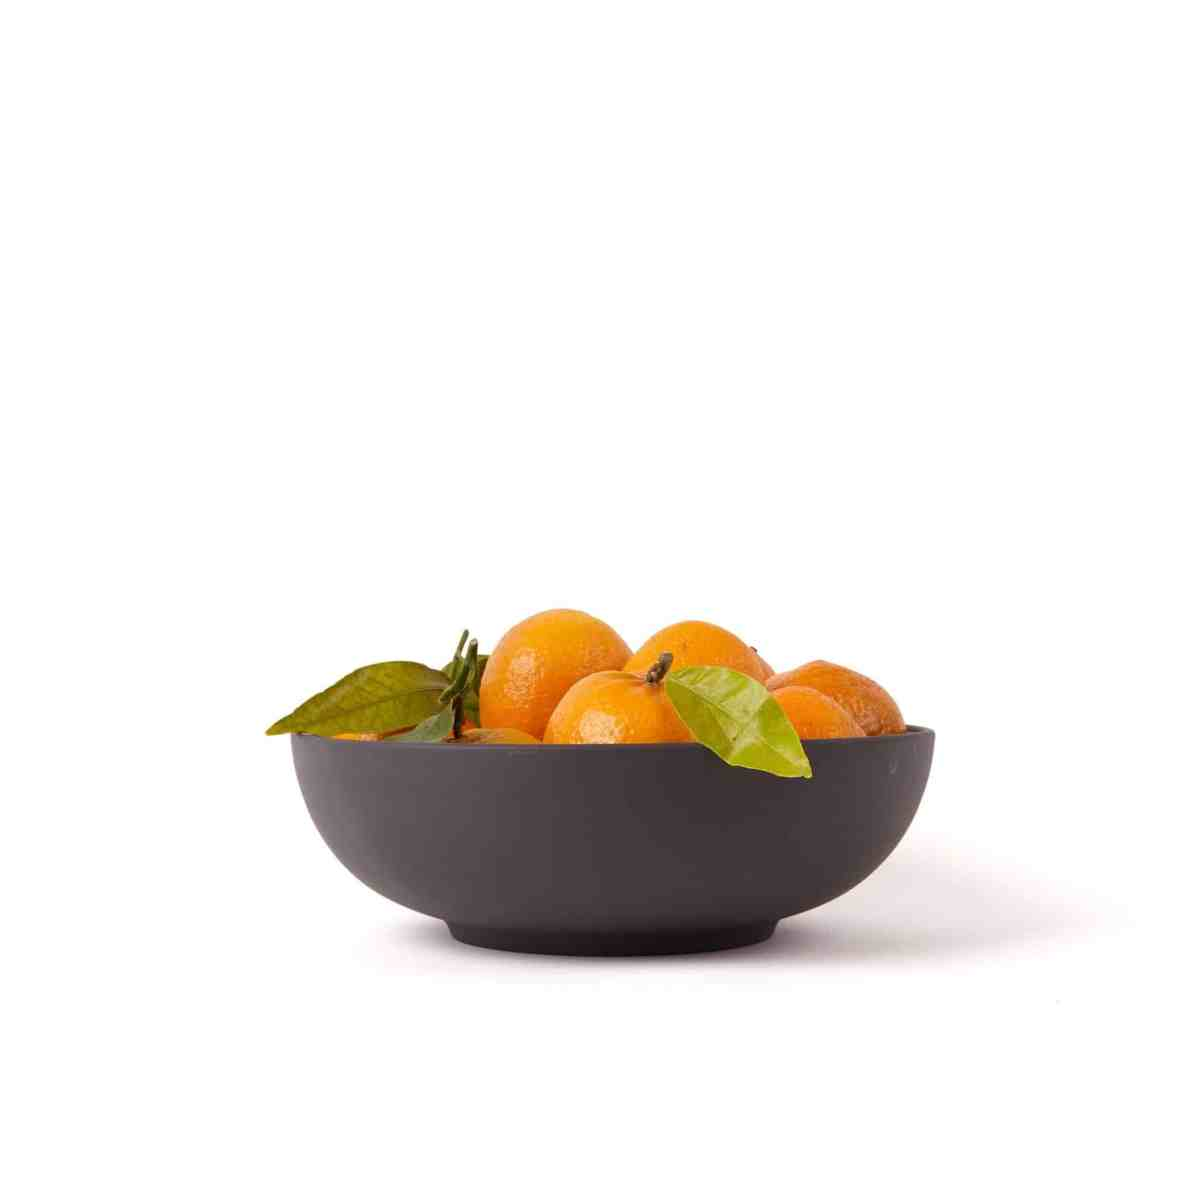 pottery-series-serving-dish-black-another-country-004